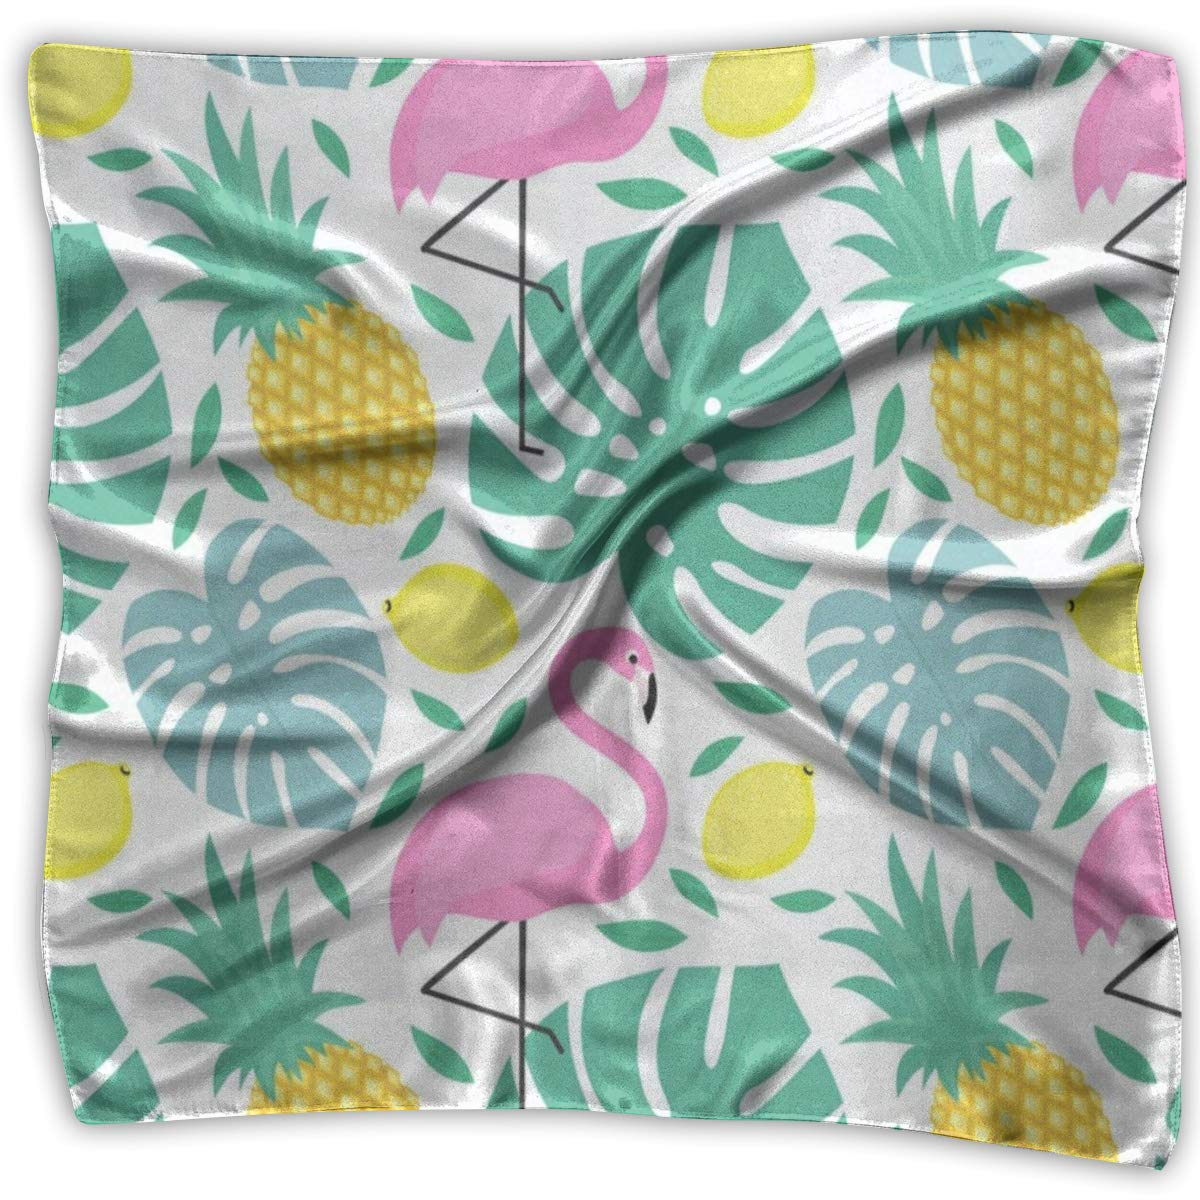 Square Scarf Plam Leaves Flamingo And Pineapple Head /& Neck Unisex Neck Head Tie For Man